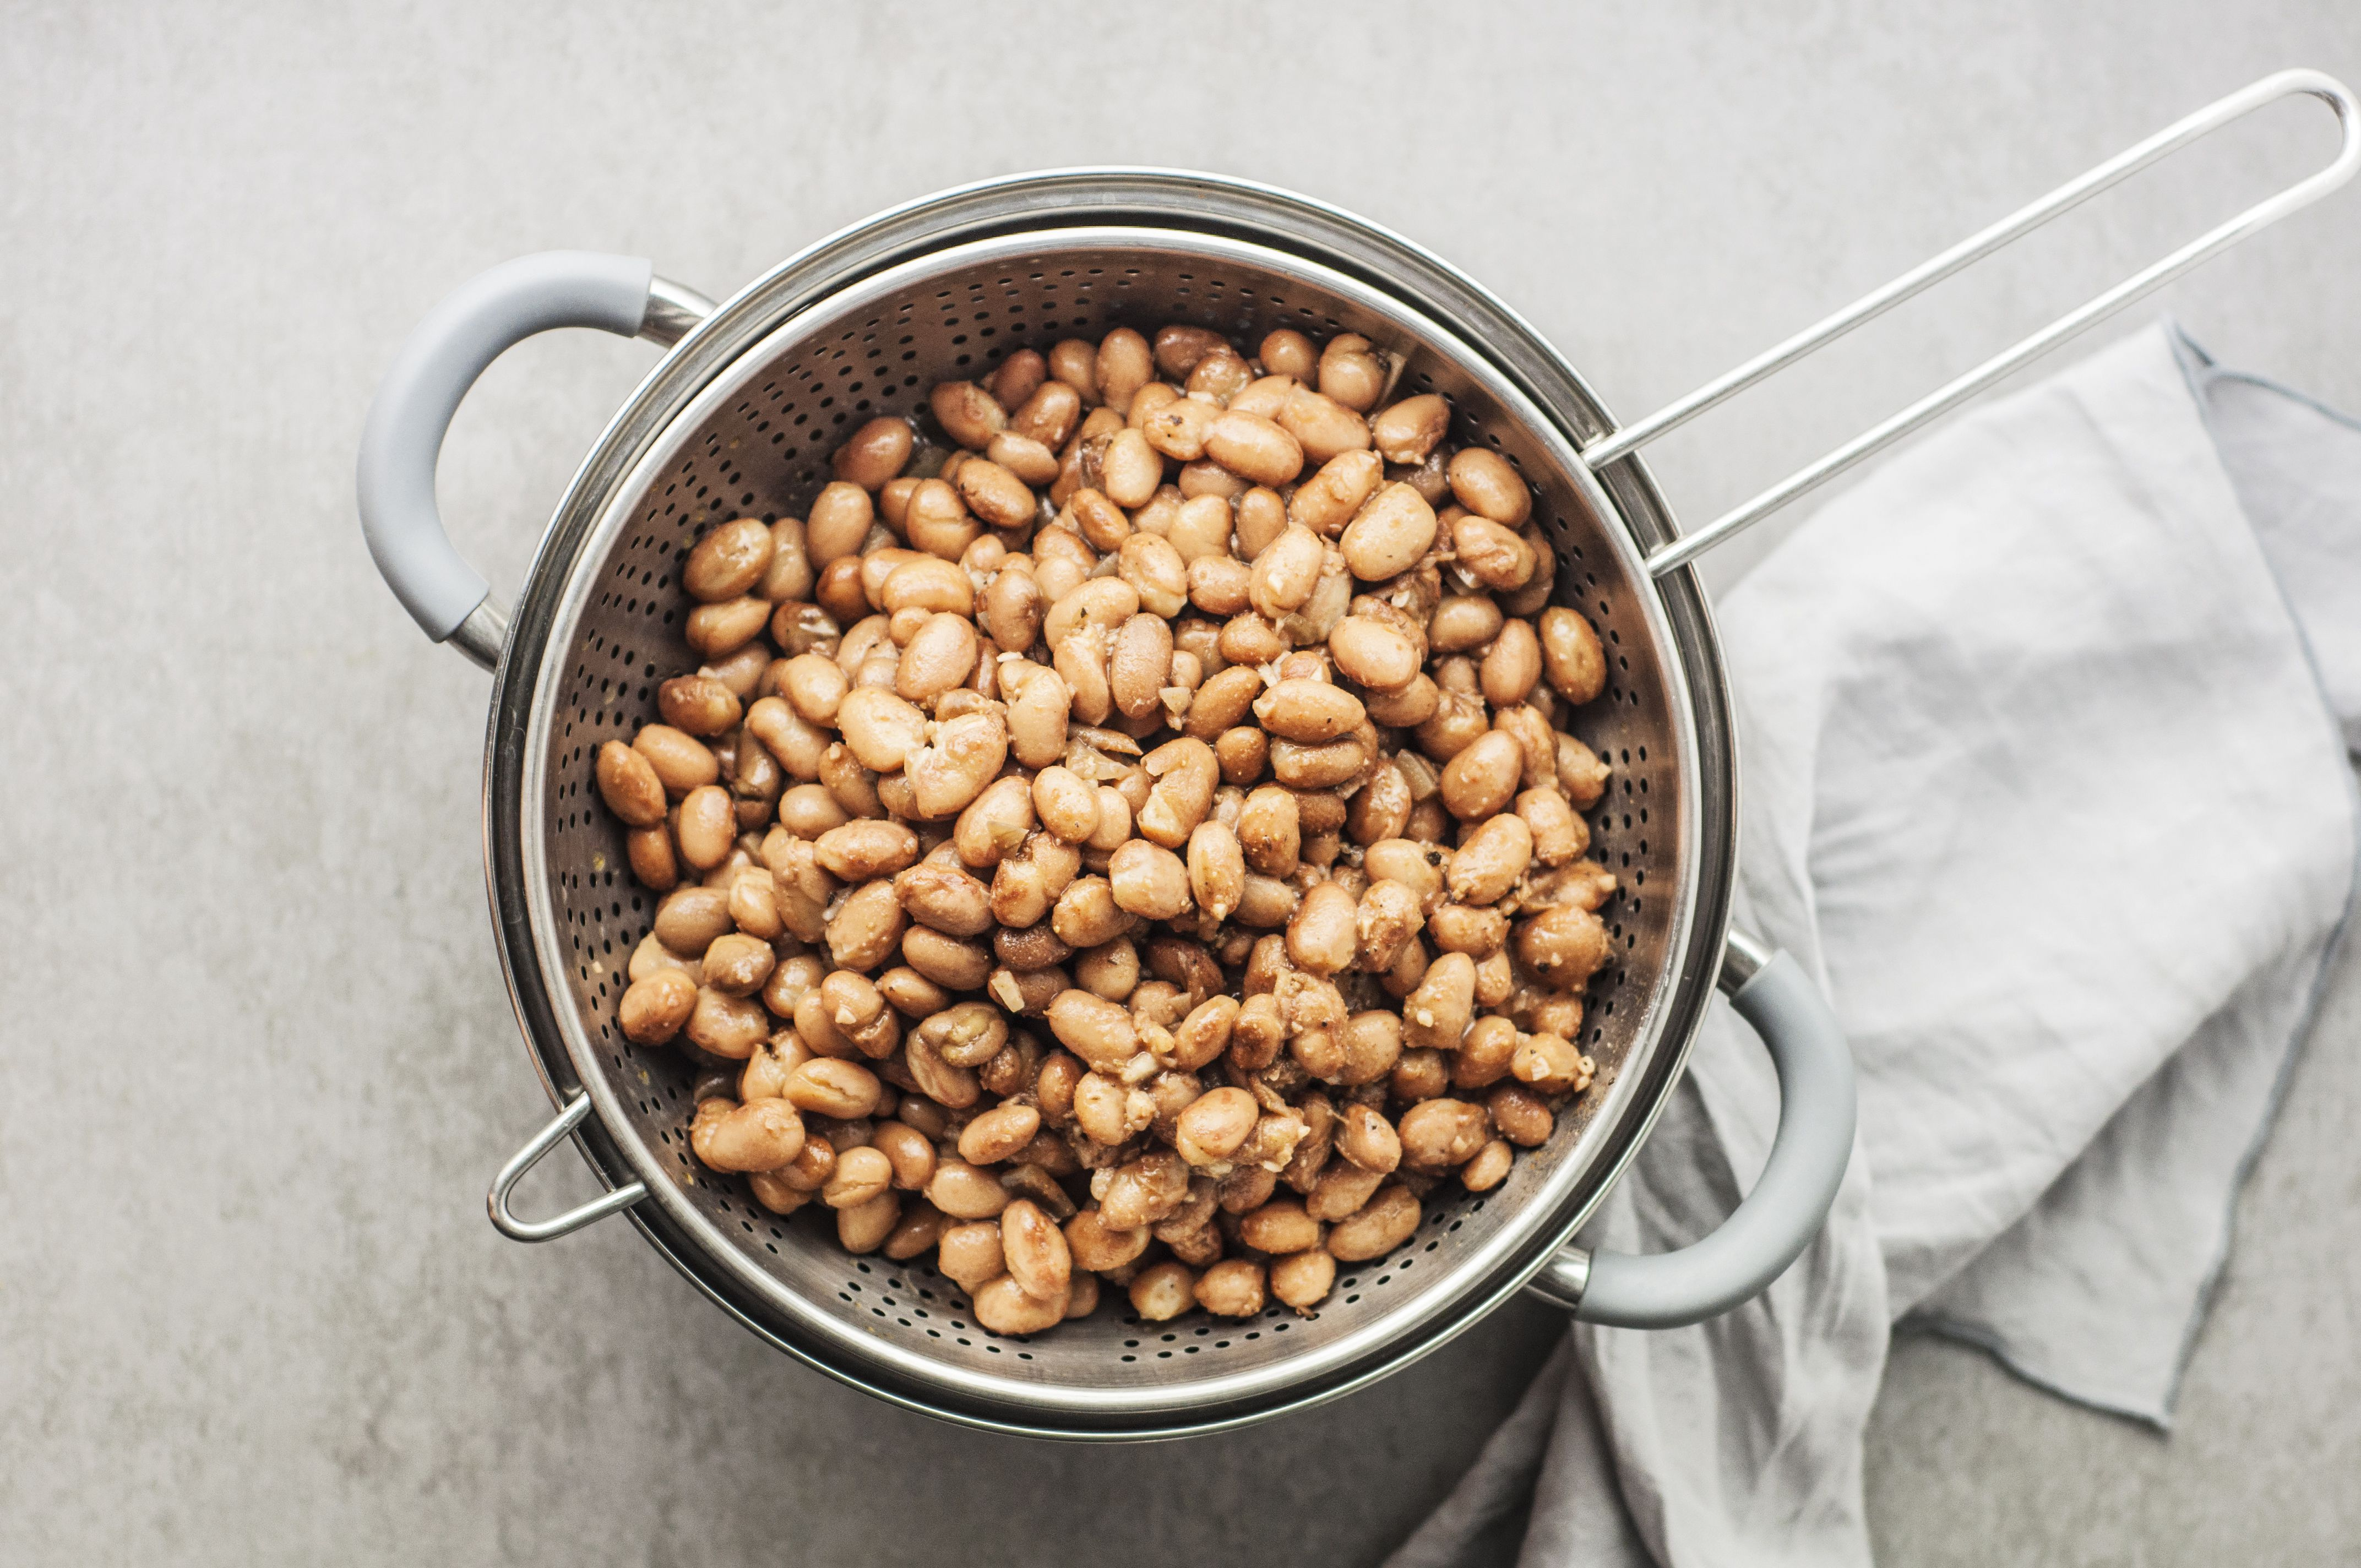 Draining the beans over a bowl